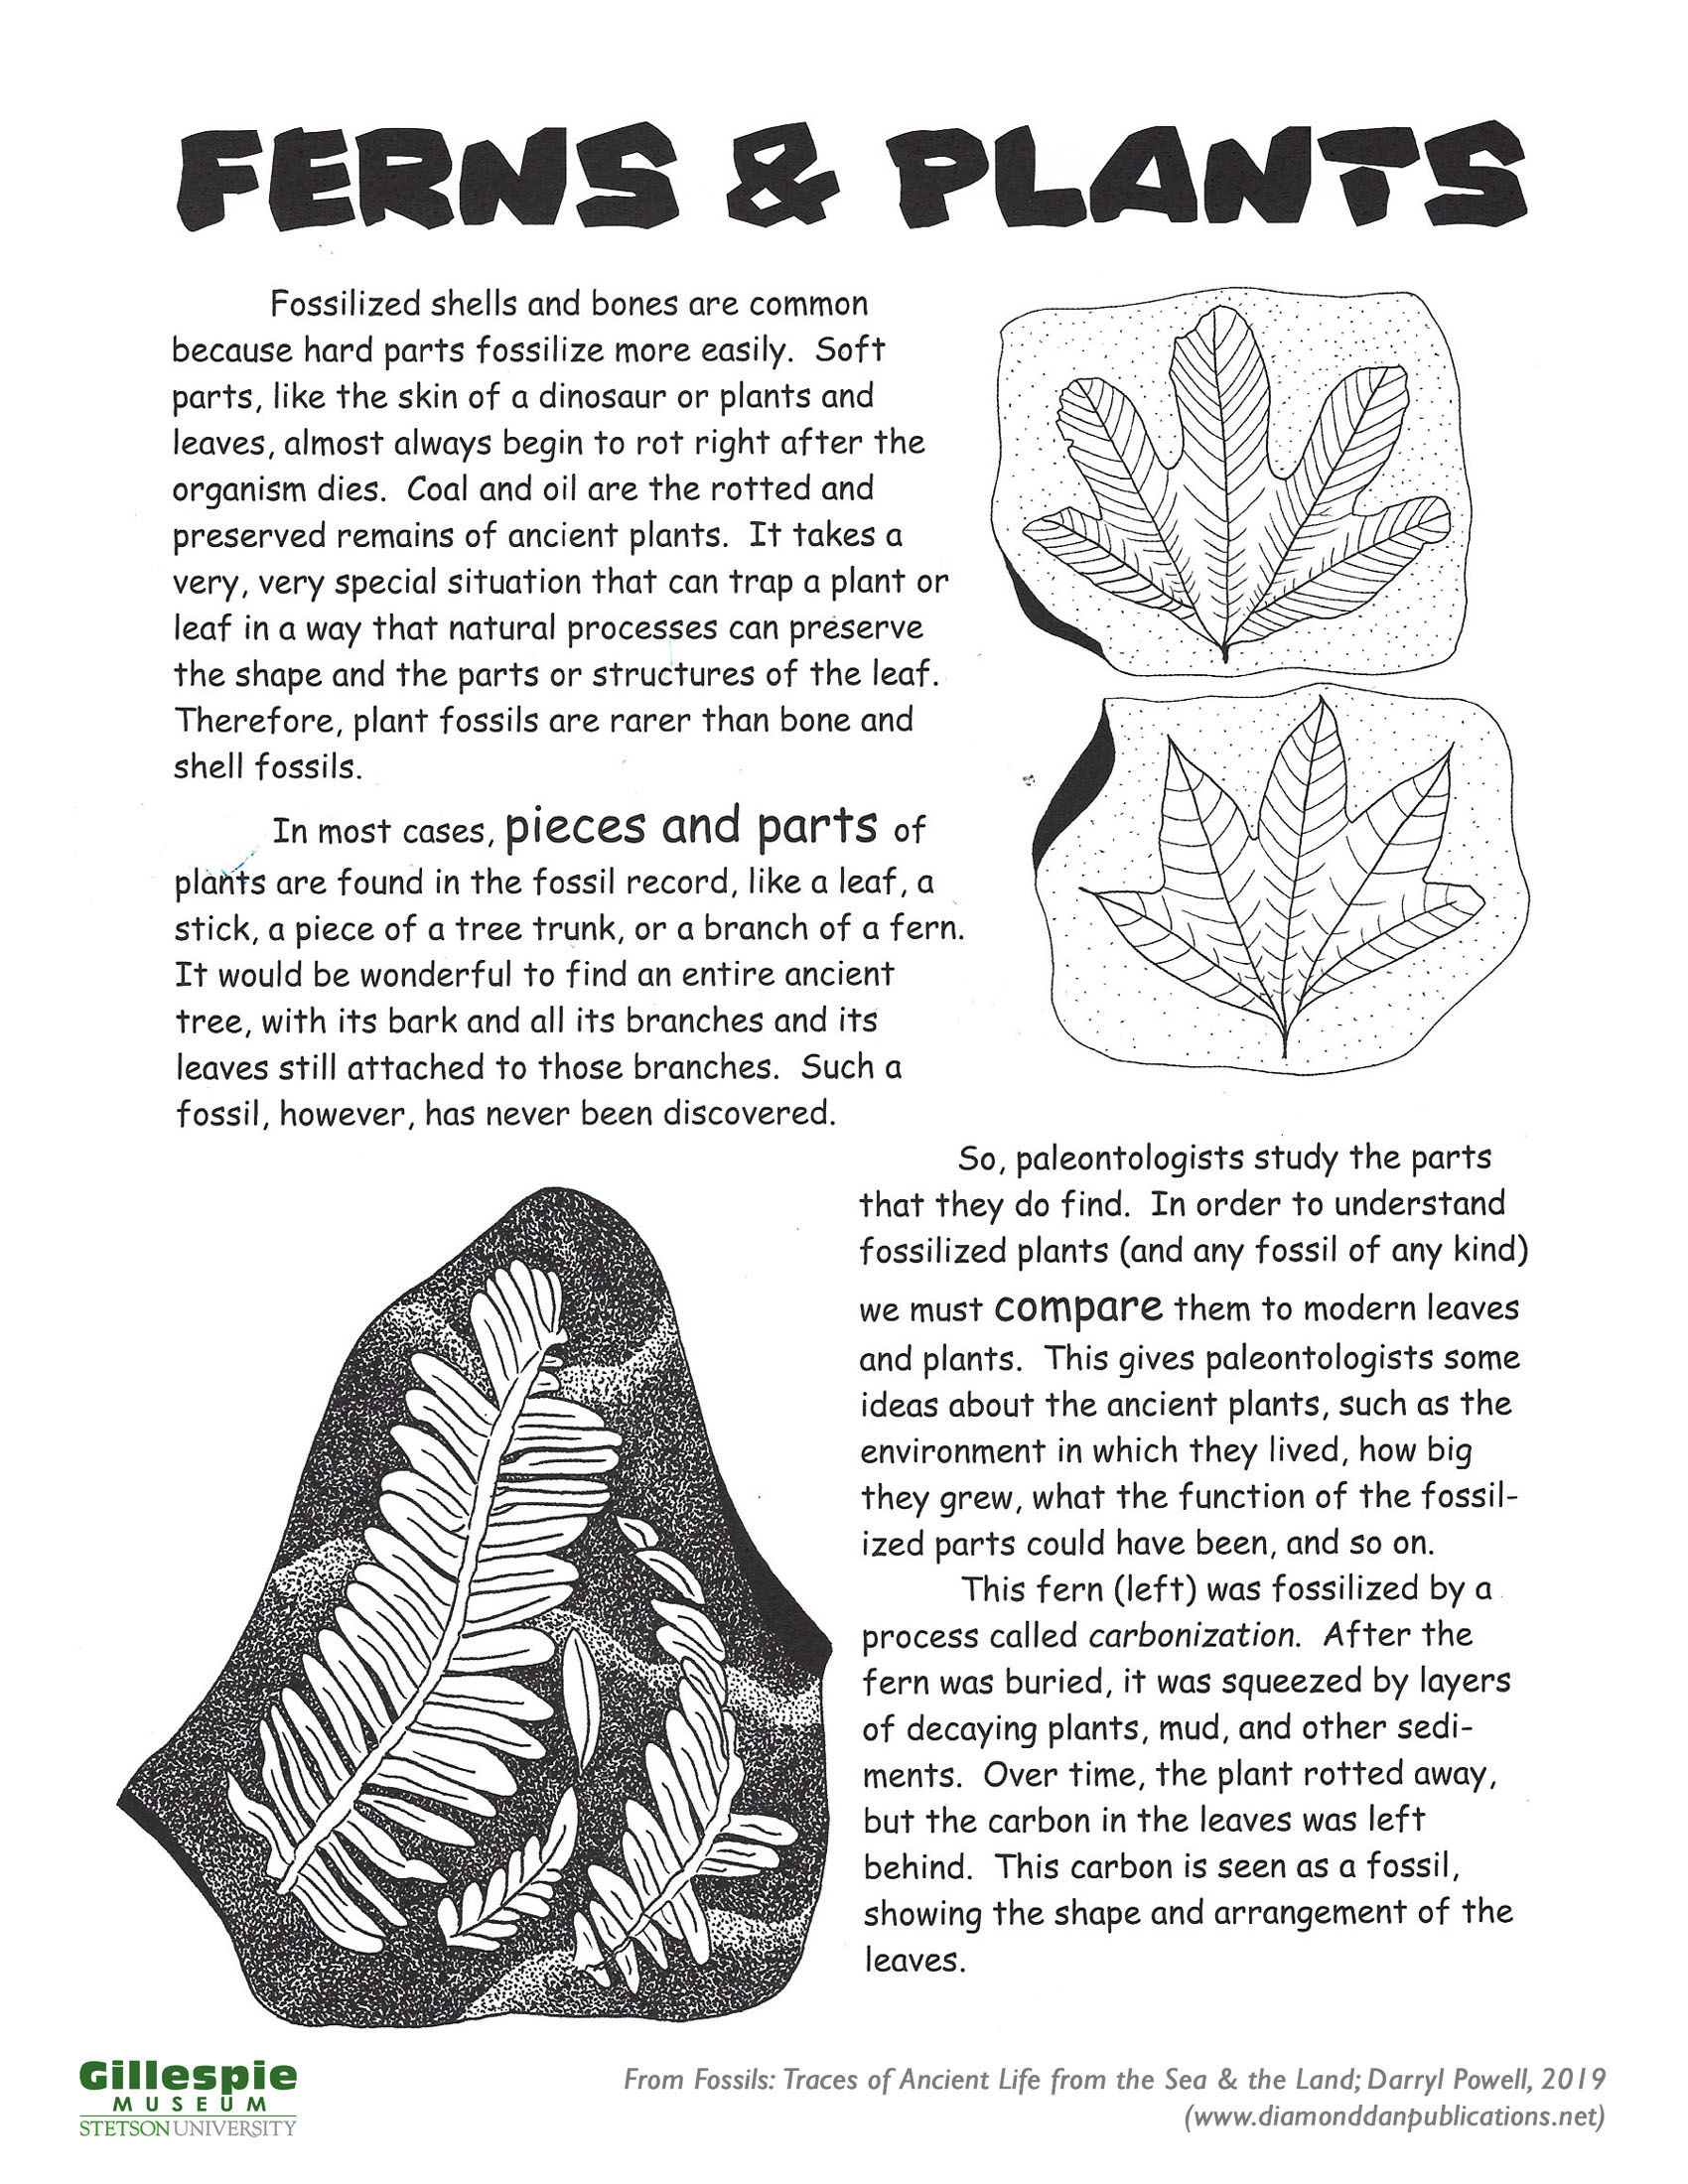 fern and plant fossils